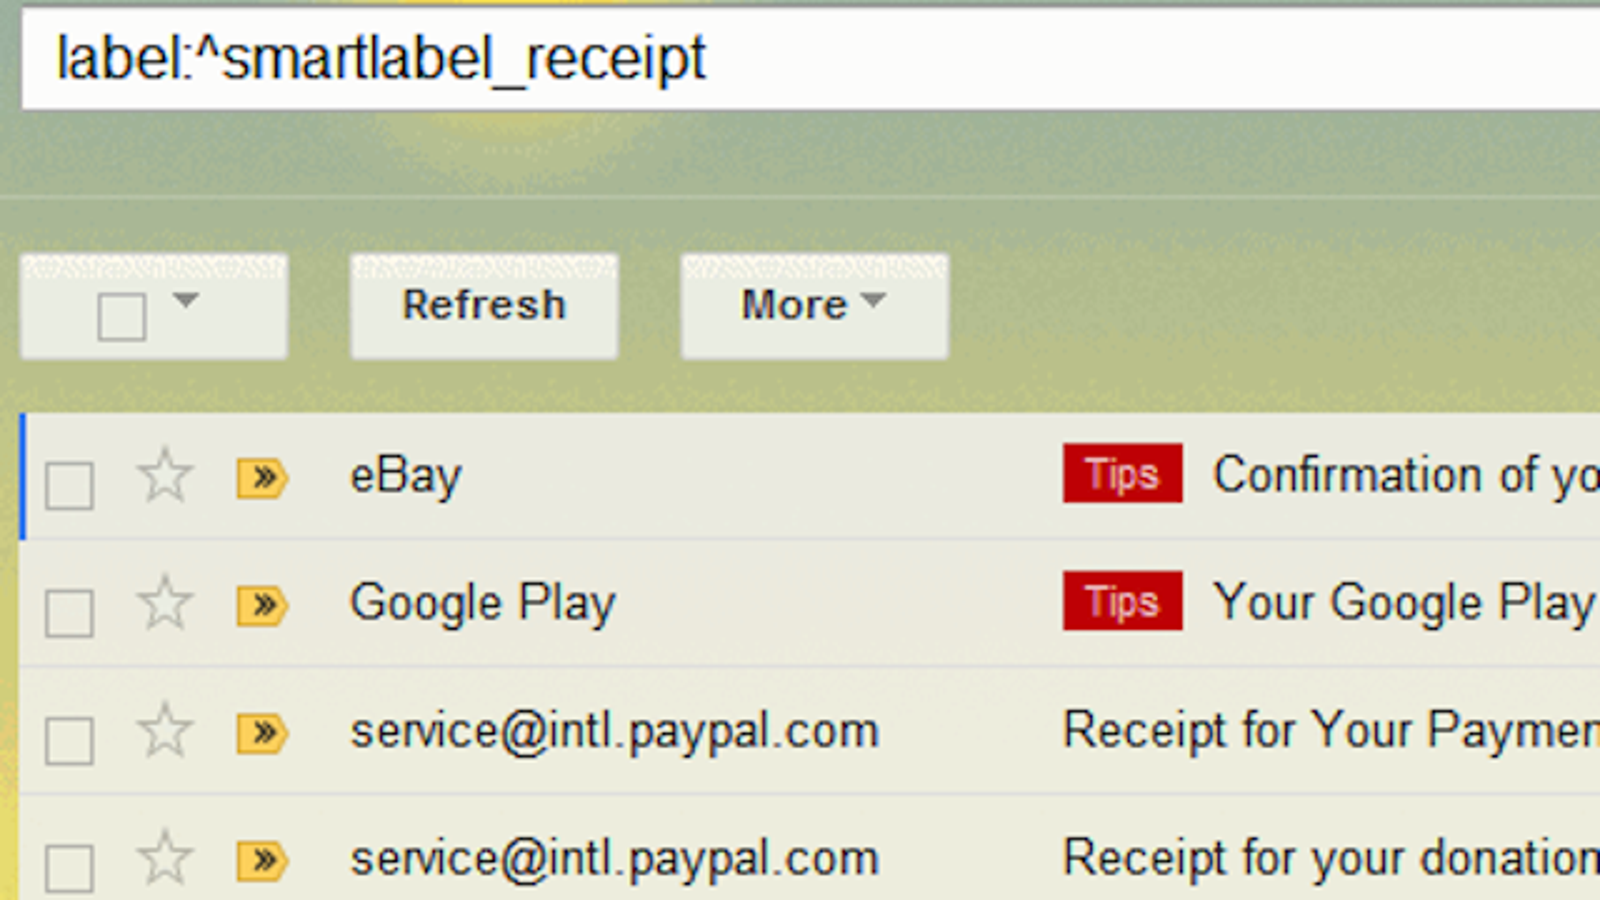 find receipts in gmail with this hidden smart label